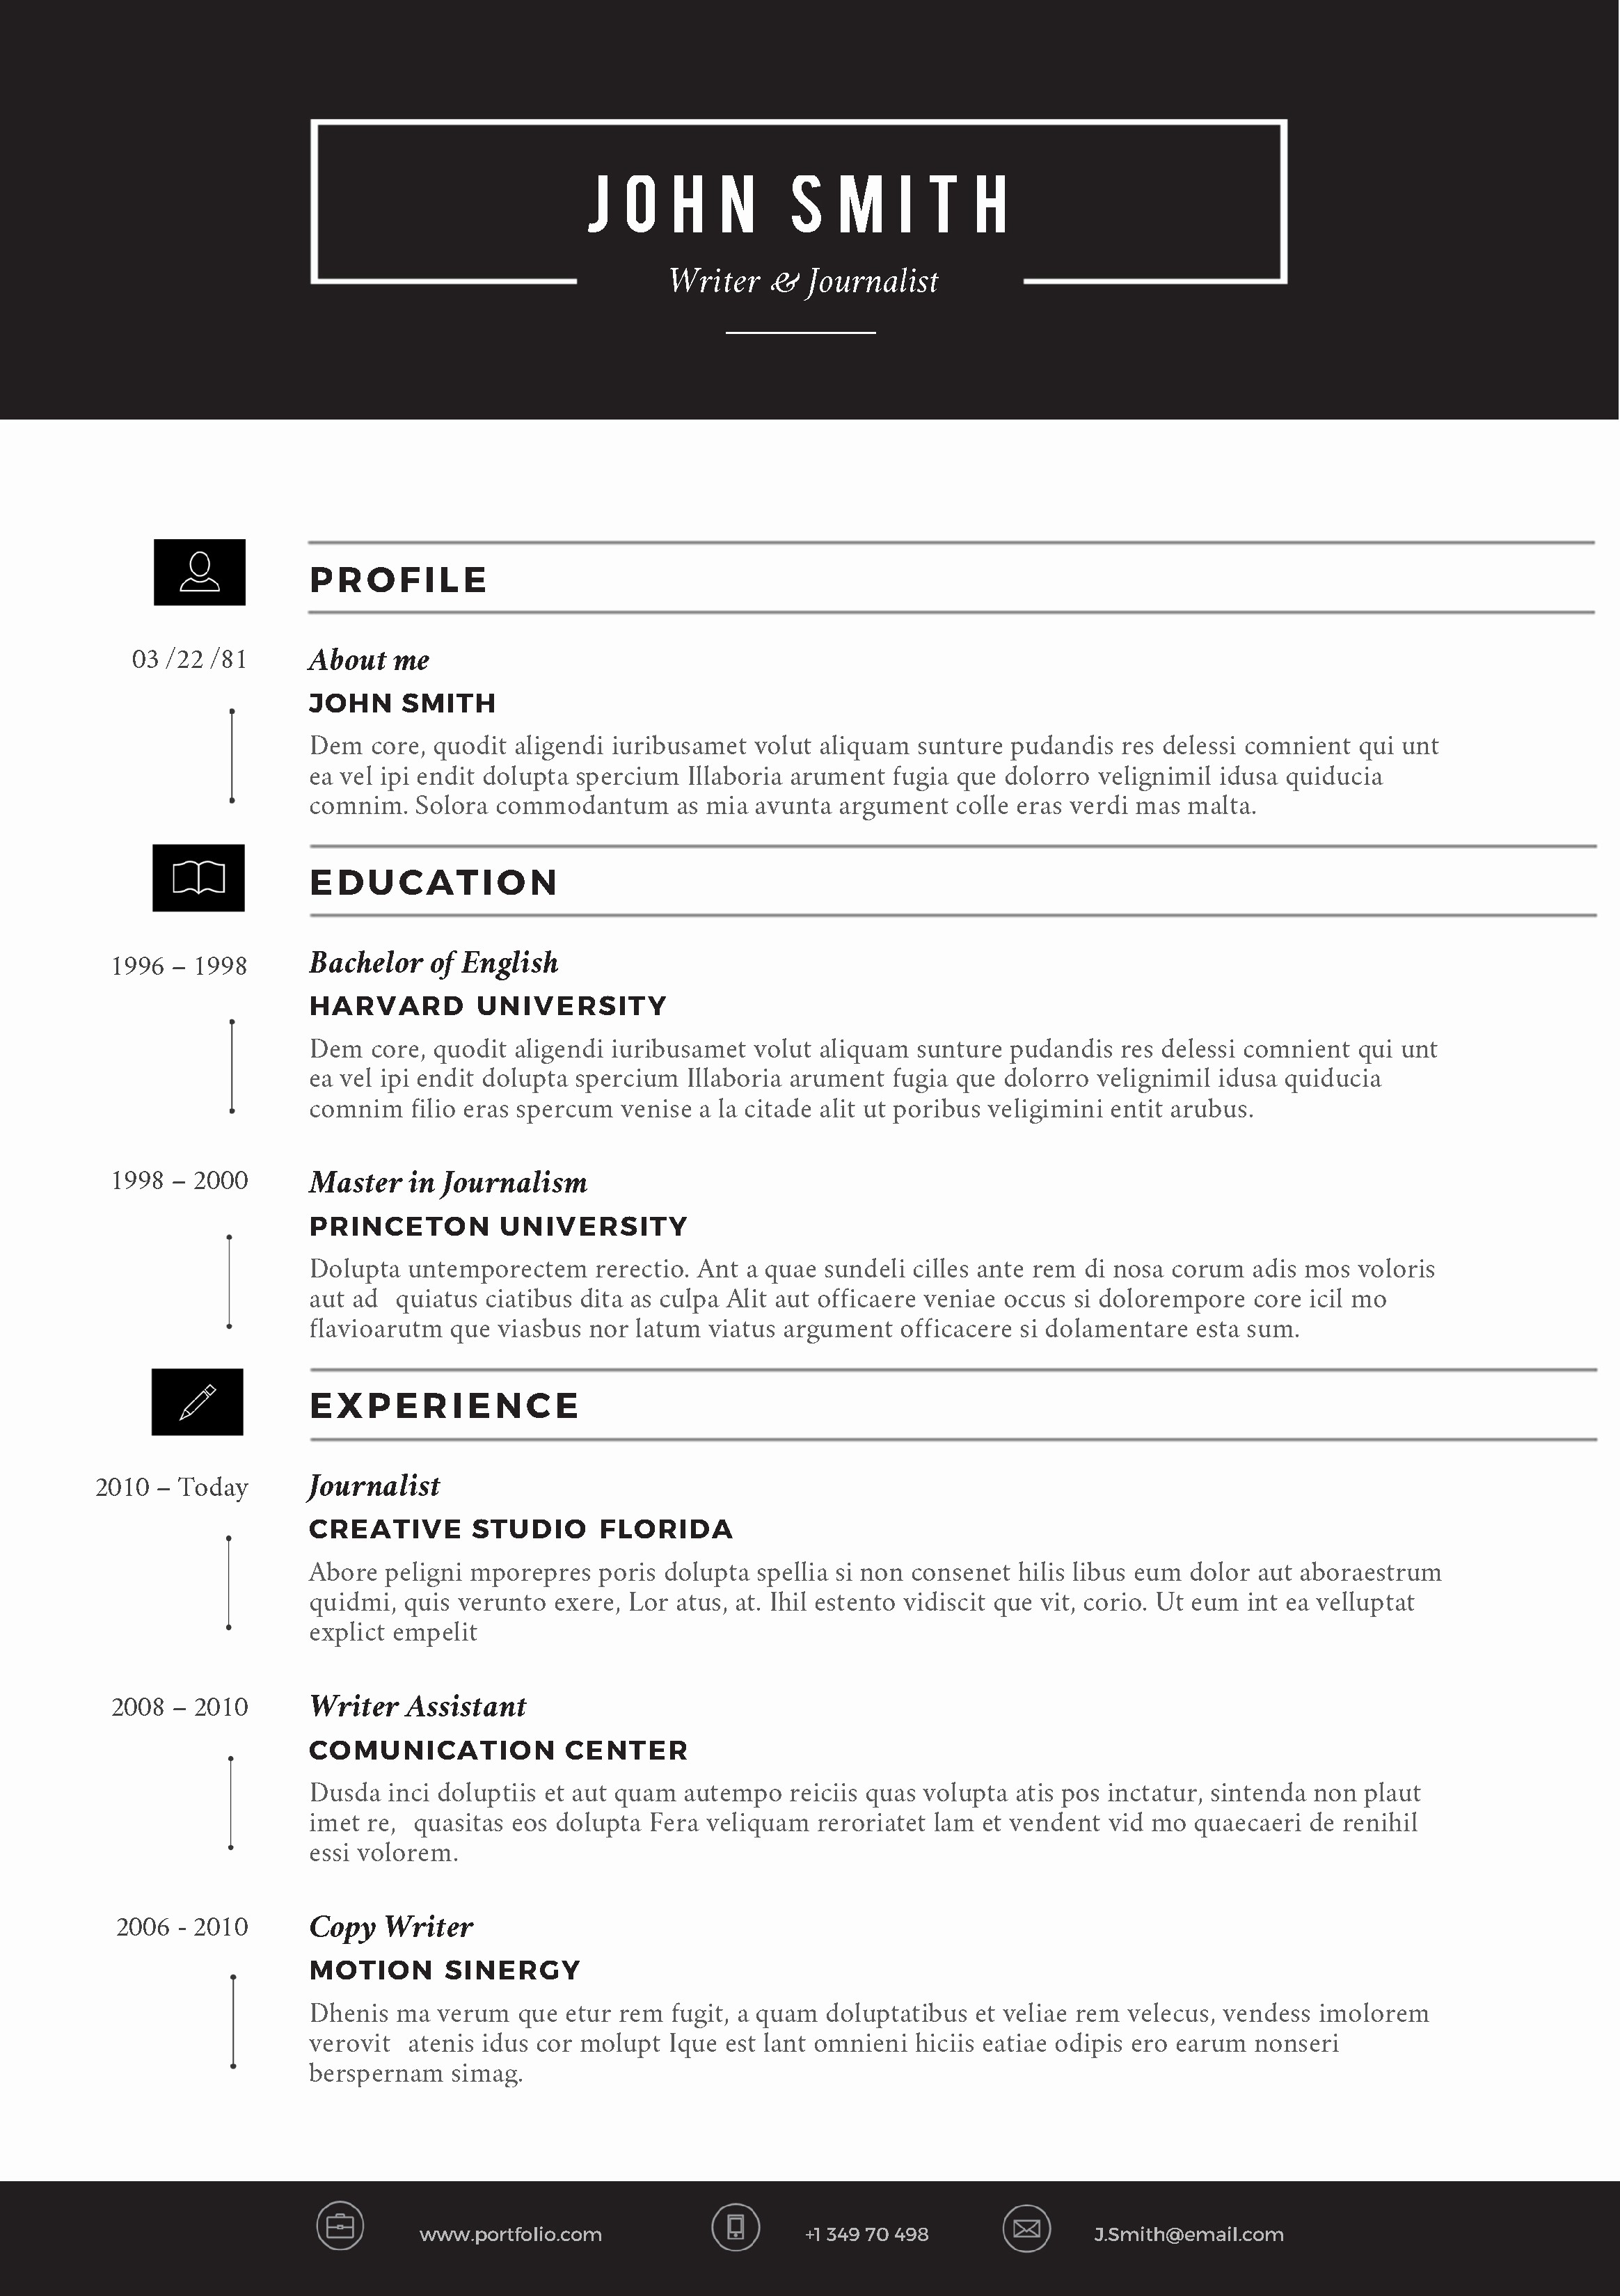 Microsoft Office Word Resume Templates Awesome Fice Resume Template Cover Letter Portfolio